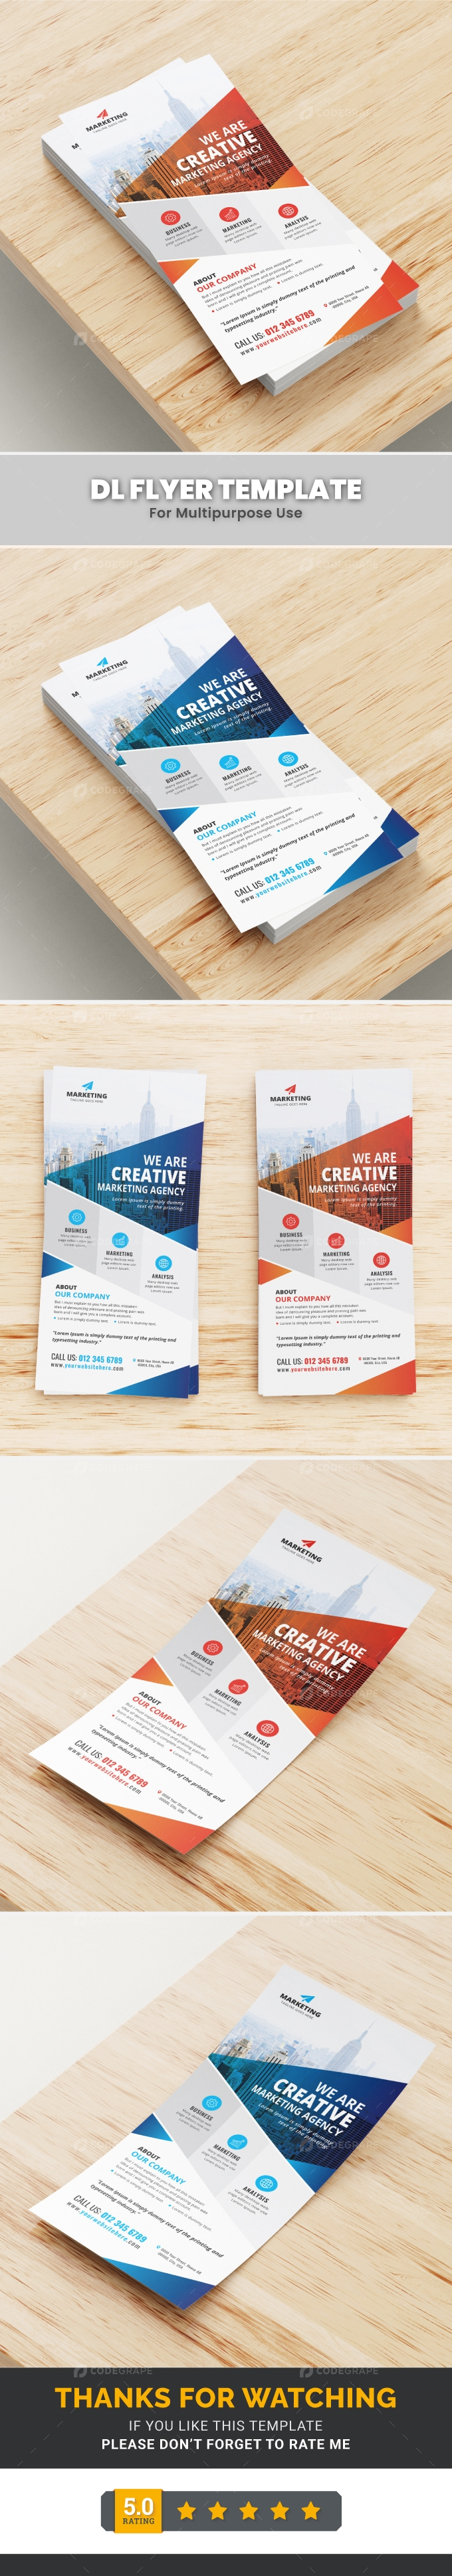 Corporate DL Flyer Template